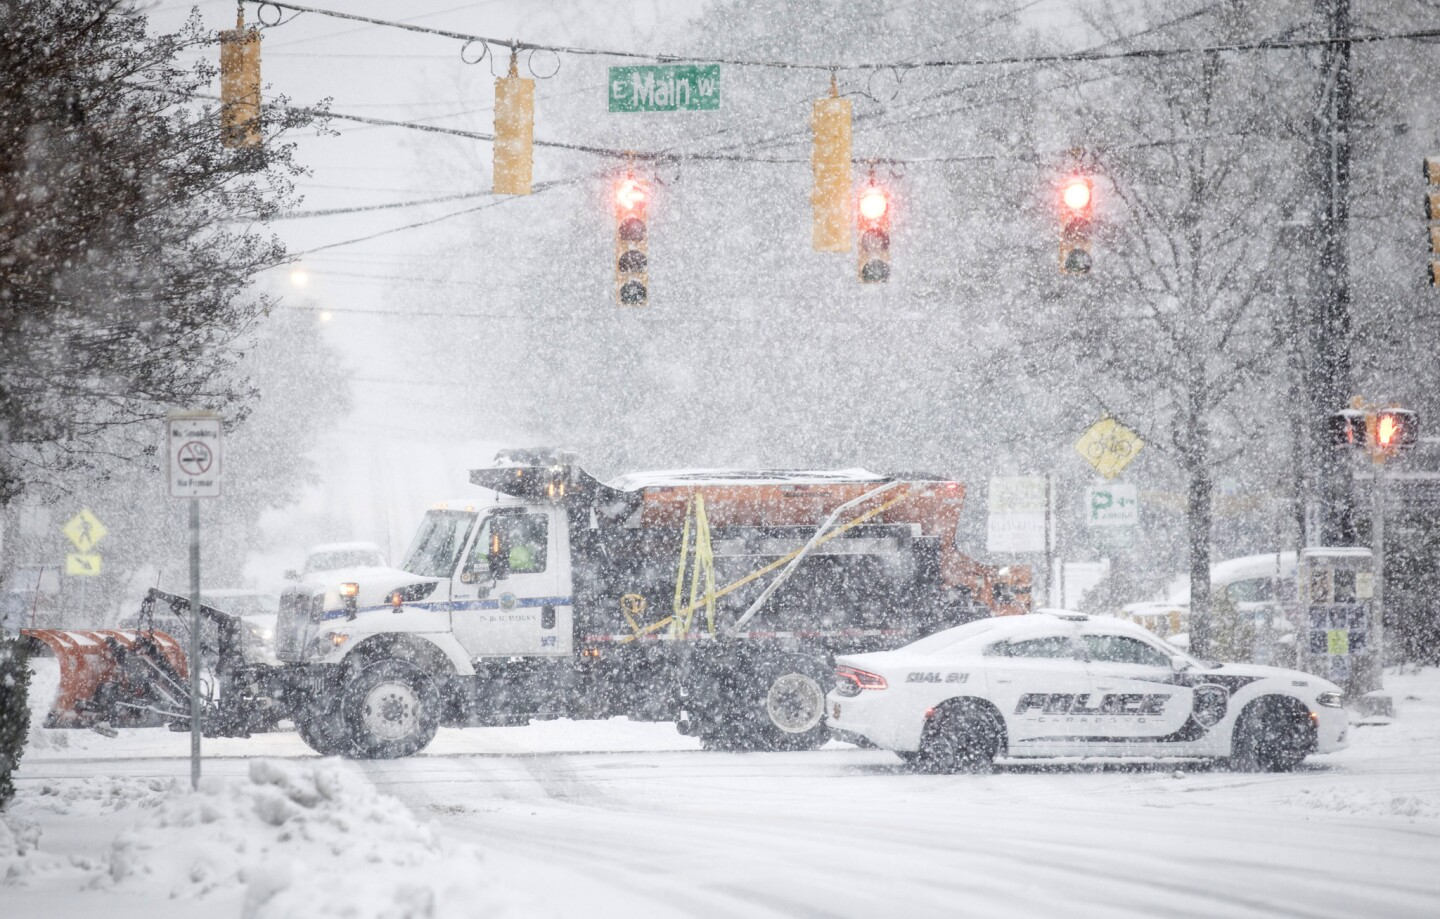 A snow plow and a police vehicle pass each other in Carrboro, N.C., on Monday. A lingering storm kept dumping immobilizing snow, sleet and freezing rain across five Southern states, leaving dangerously icy roads and hundreds of thousands of people without electricity.